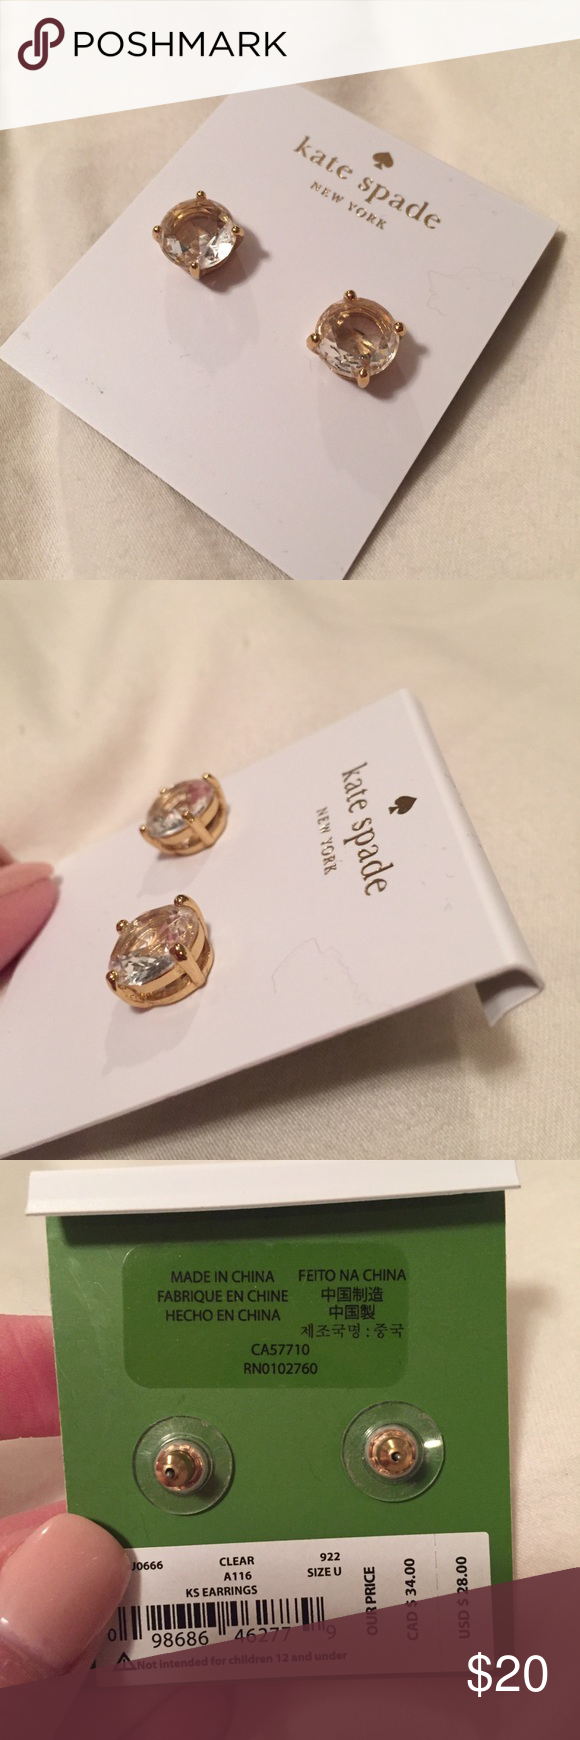 Kate Spade Stud Earrings NWT These adorable Kate Spade studs are in the perfect accessory! Jewelry Earrings